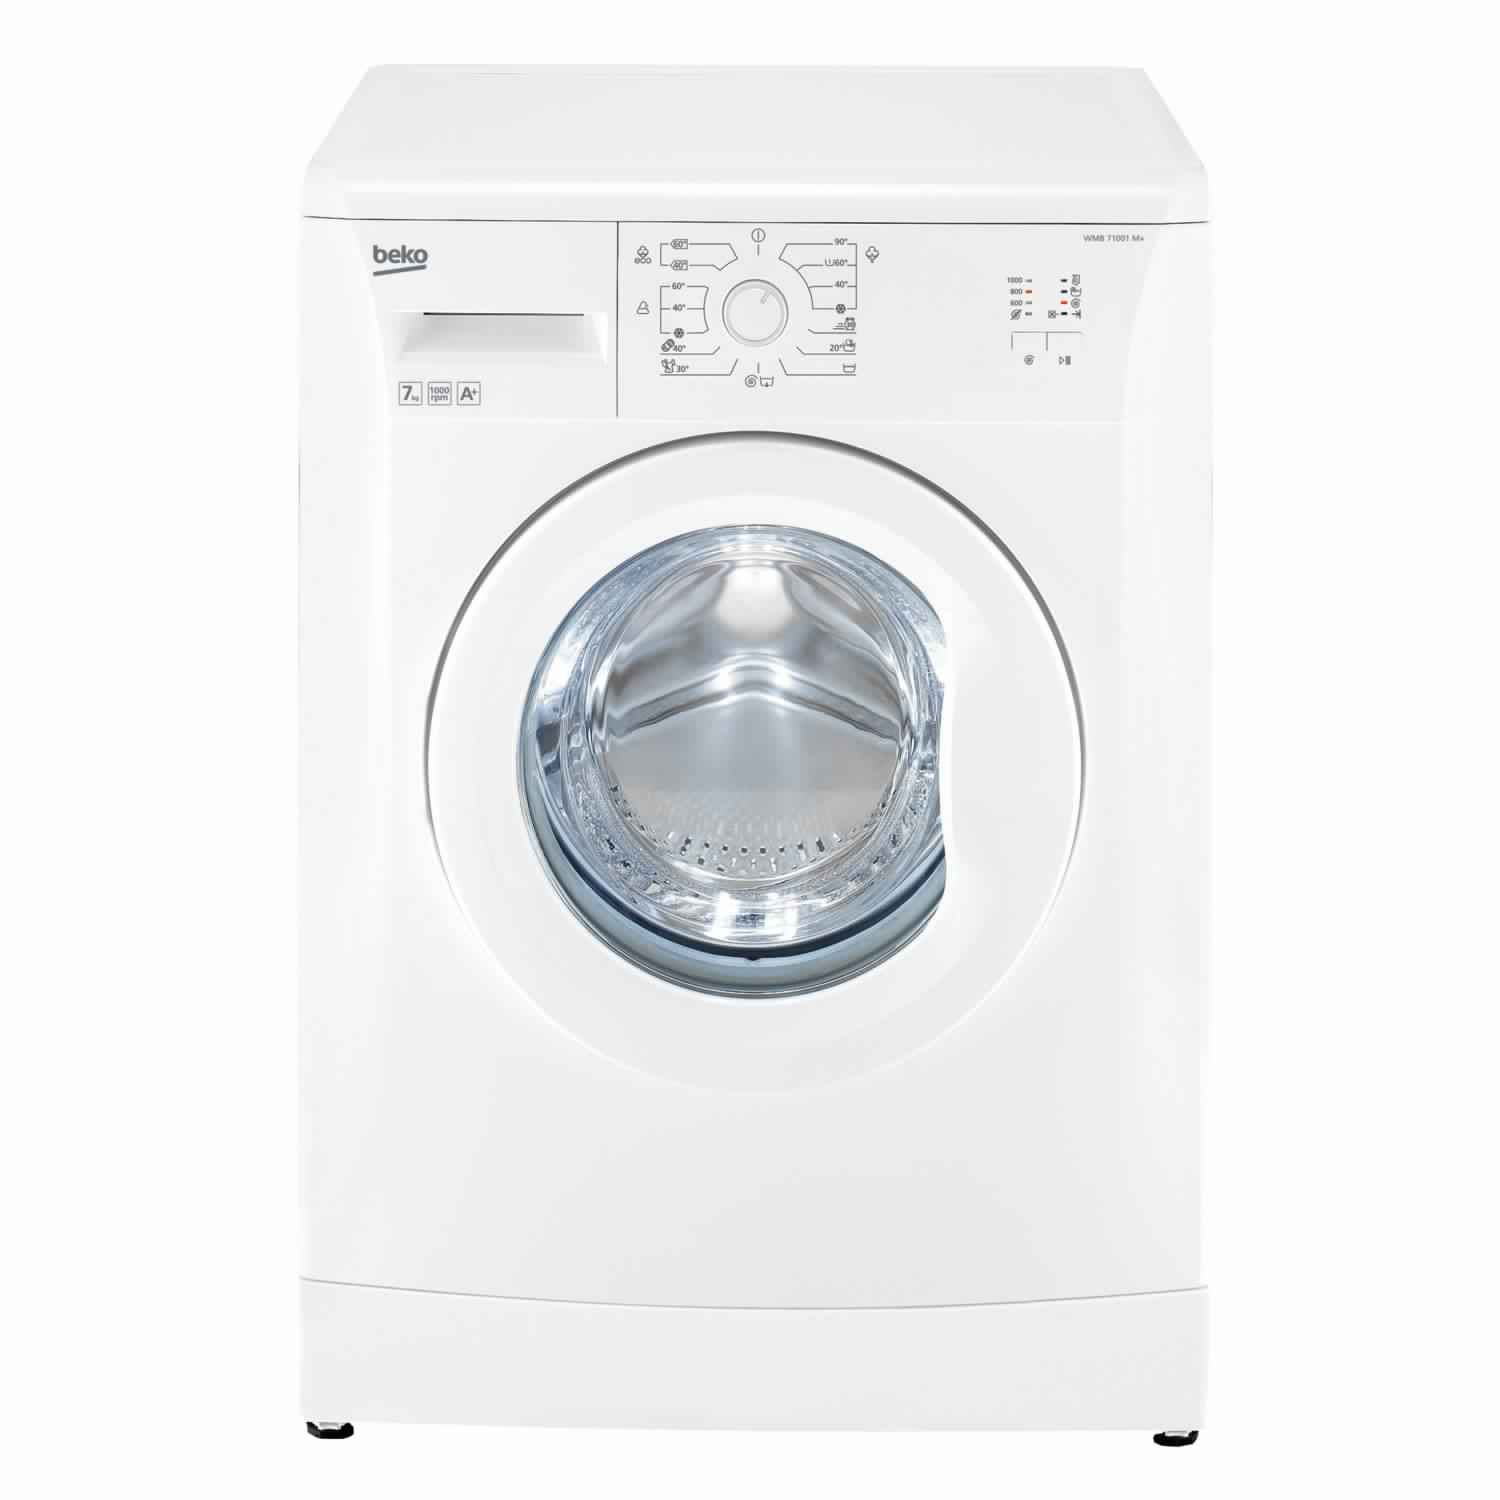 cityshop vente machine laver automatique beko 7kg blanc en tunisie. Black Bedroom Furniture Sets. Home Design Ideas